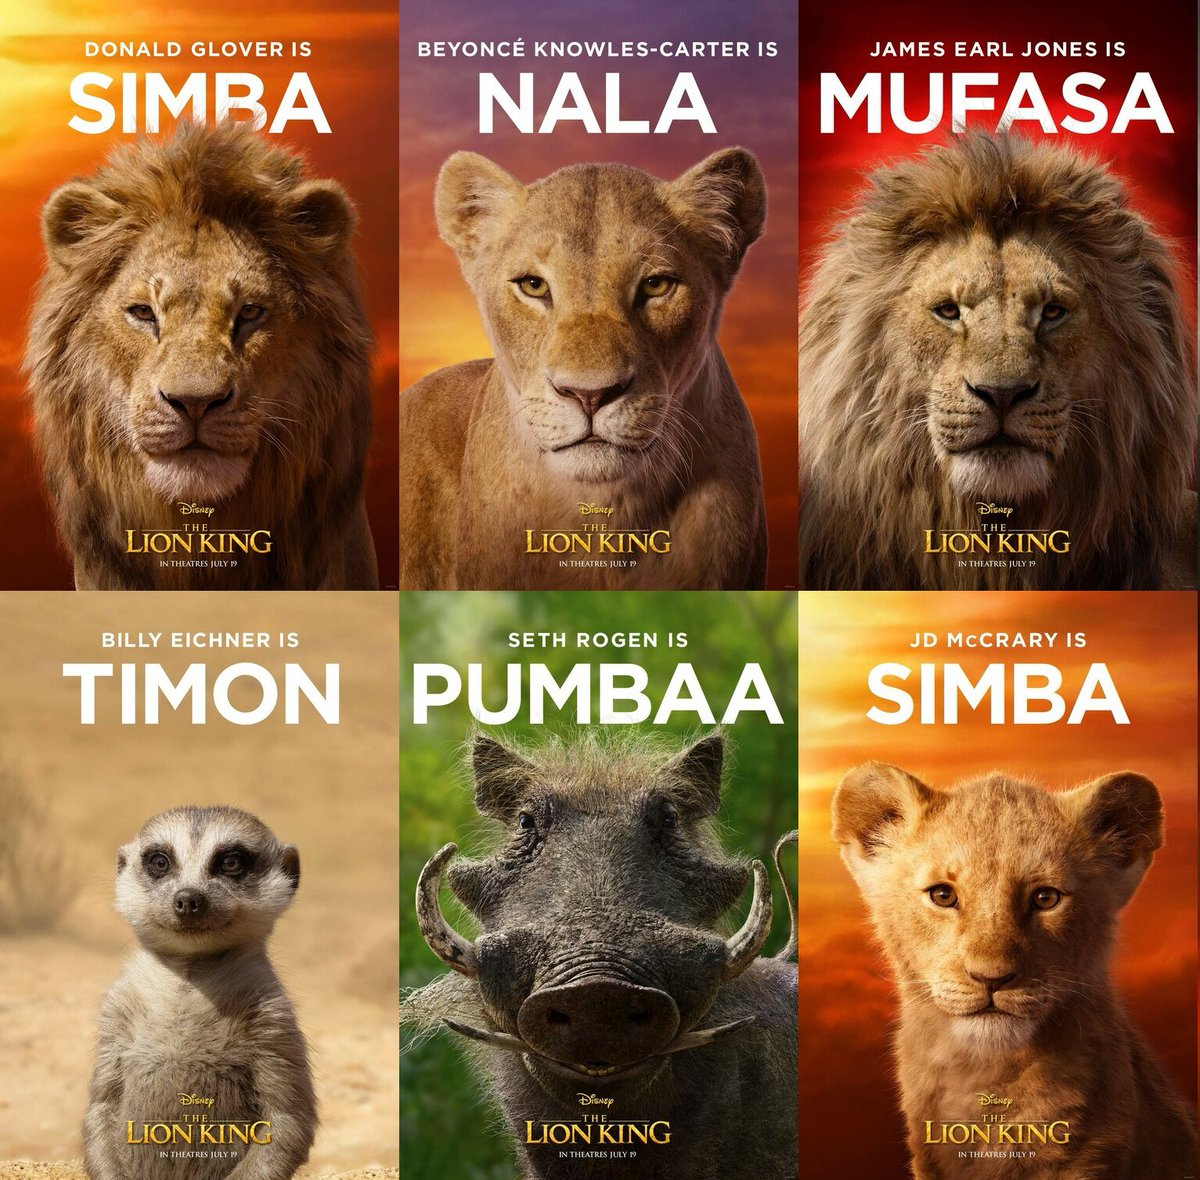 Popcornography On Twitter Character Posters For Disney S The Lion King Released Thelionking Disney Movieposters